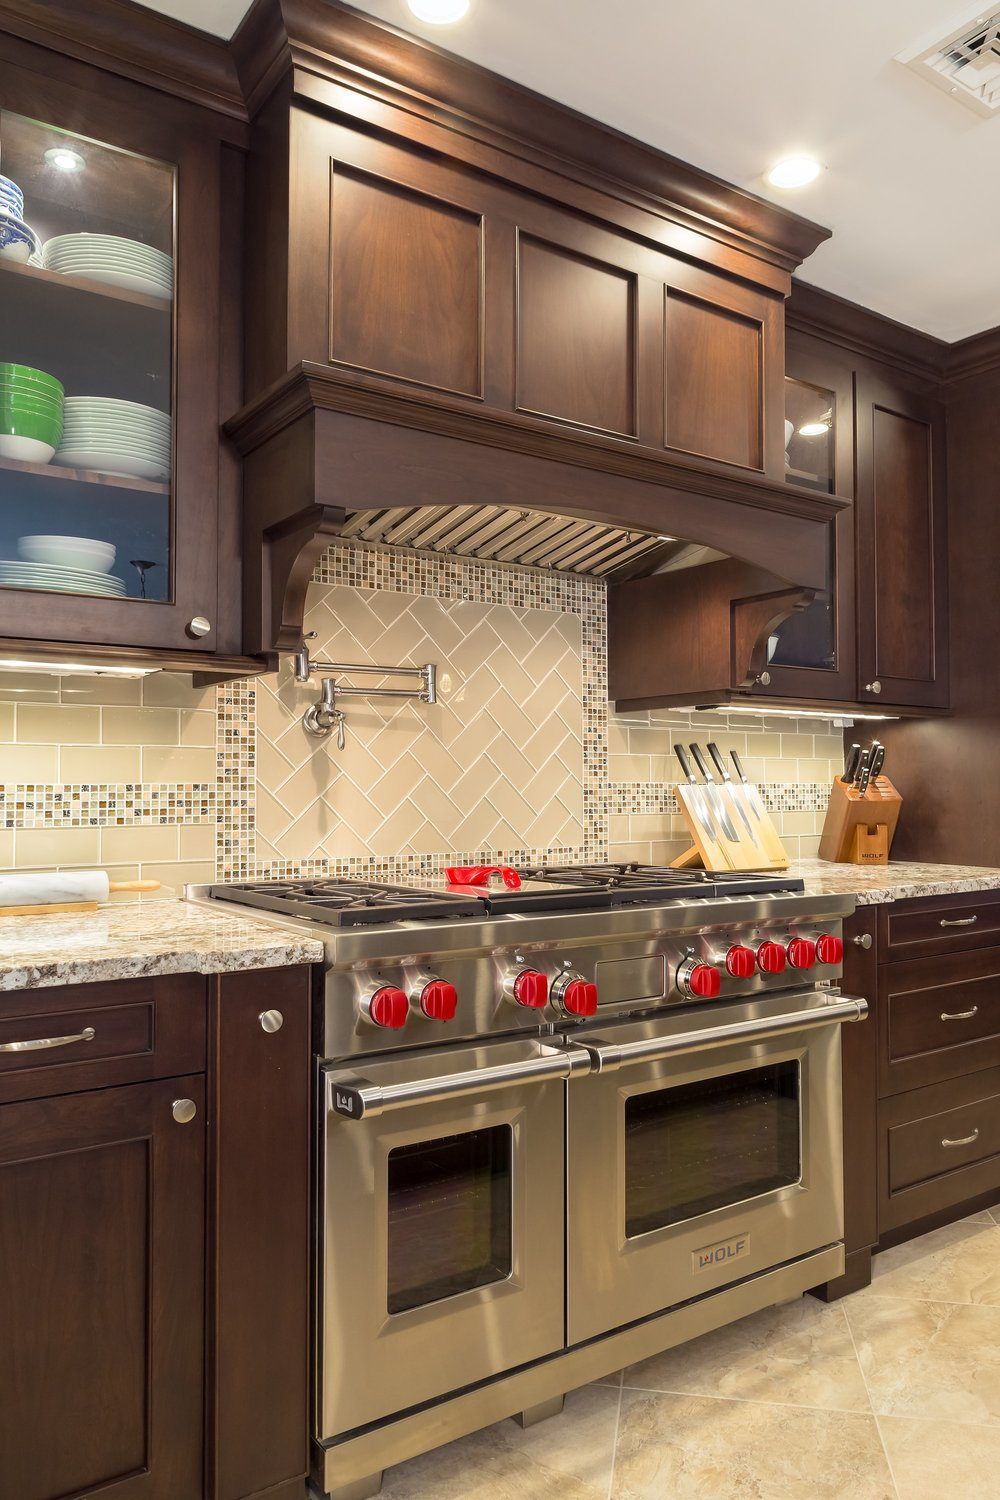 Traditional style kitchen with classic backsplash